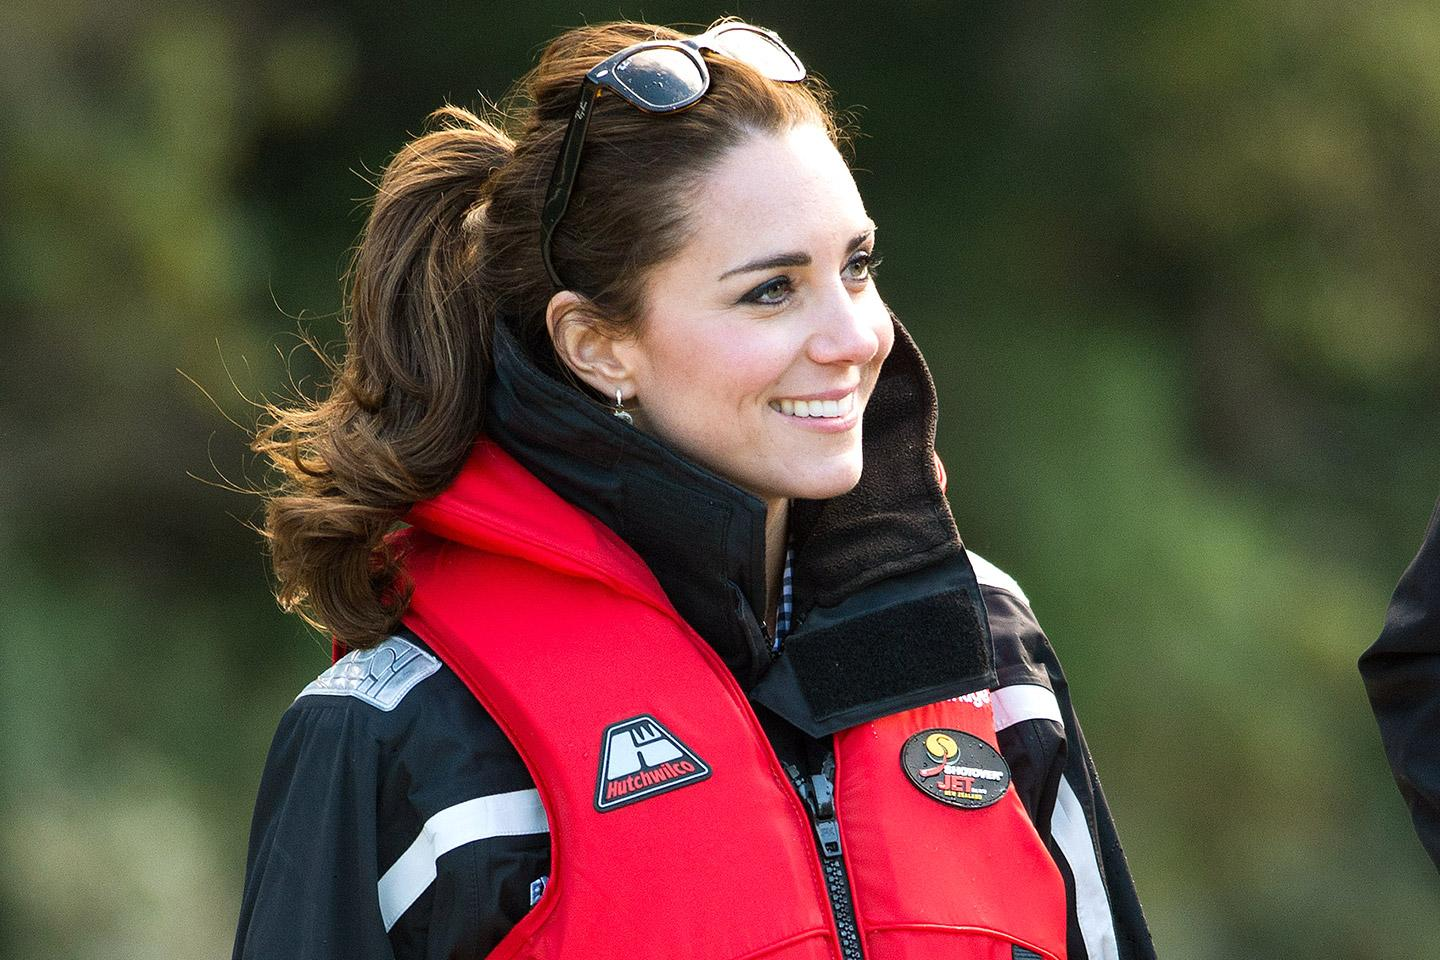 Add breathing underwater to Kate Middleton's growing skill set http://t.co/191pbWiBIr http://t.co/jwQtJc1peo